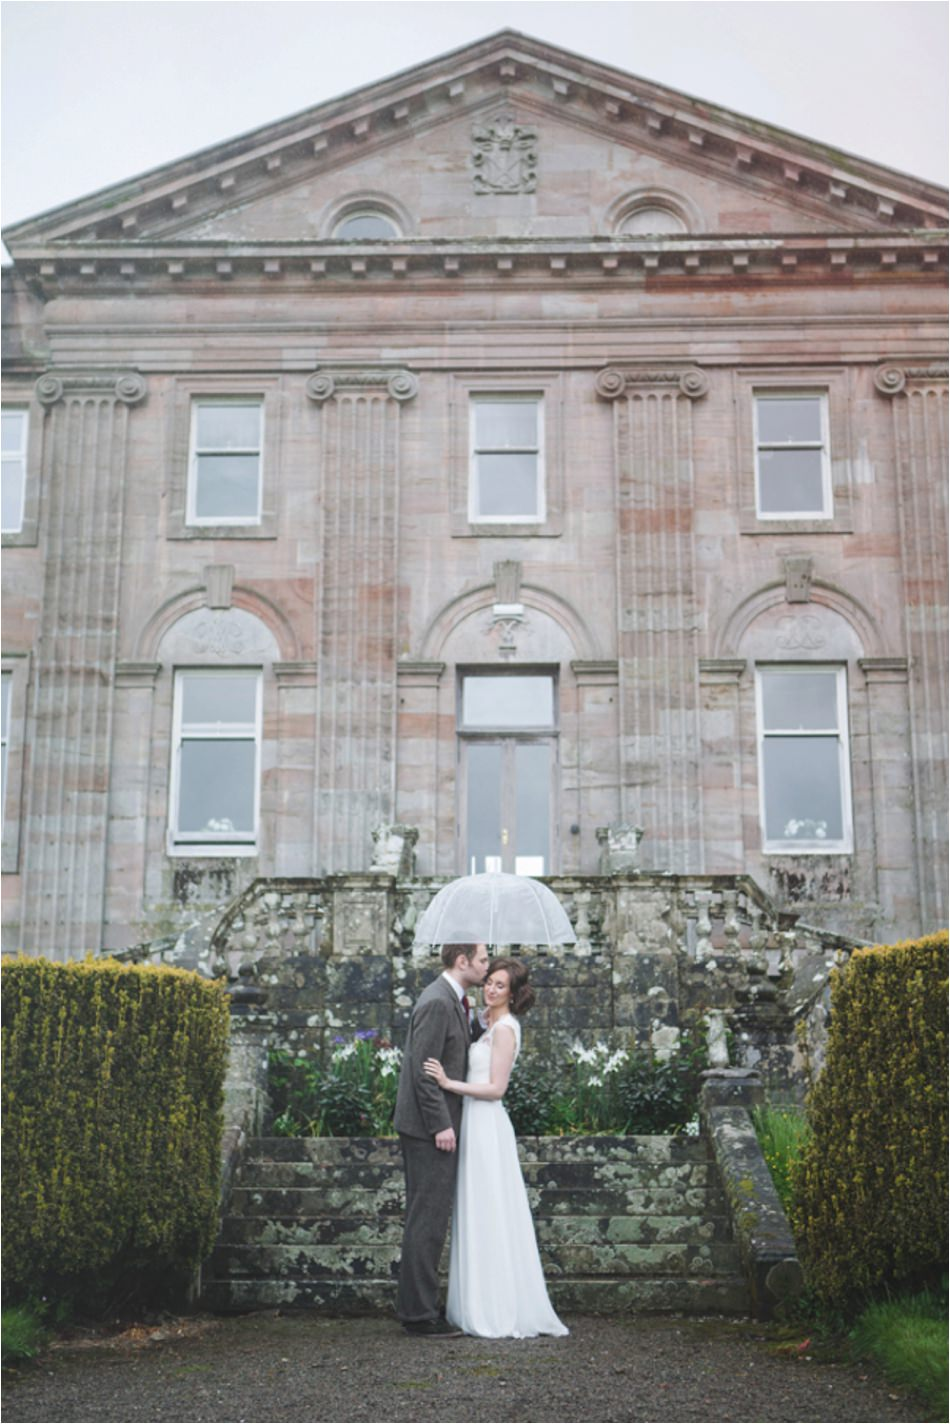 first look wedding photographers scotland glasgow 1-23.jpg